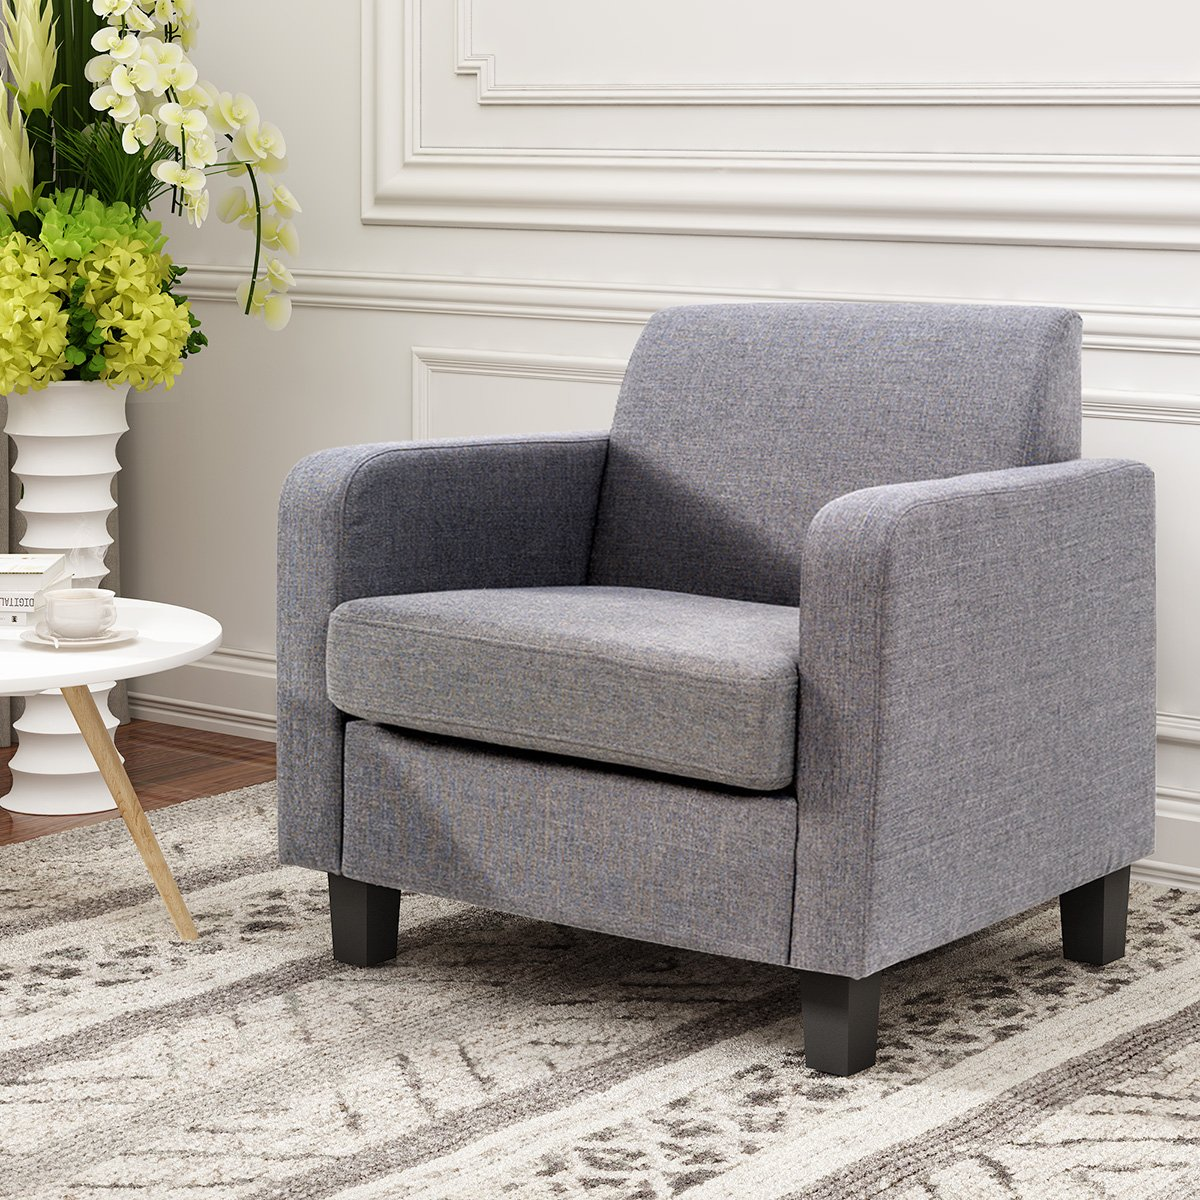 Beshomethings Fabric Linen Tub Chair Linen Sofa Armchair For Dining Living Room Lounge Reception Office Furniture Modern Grey